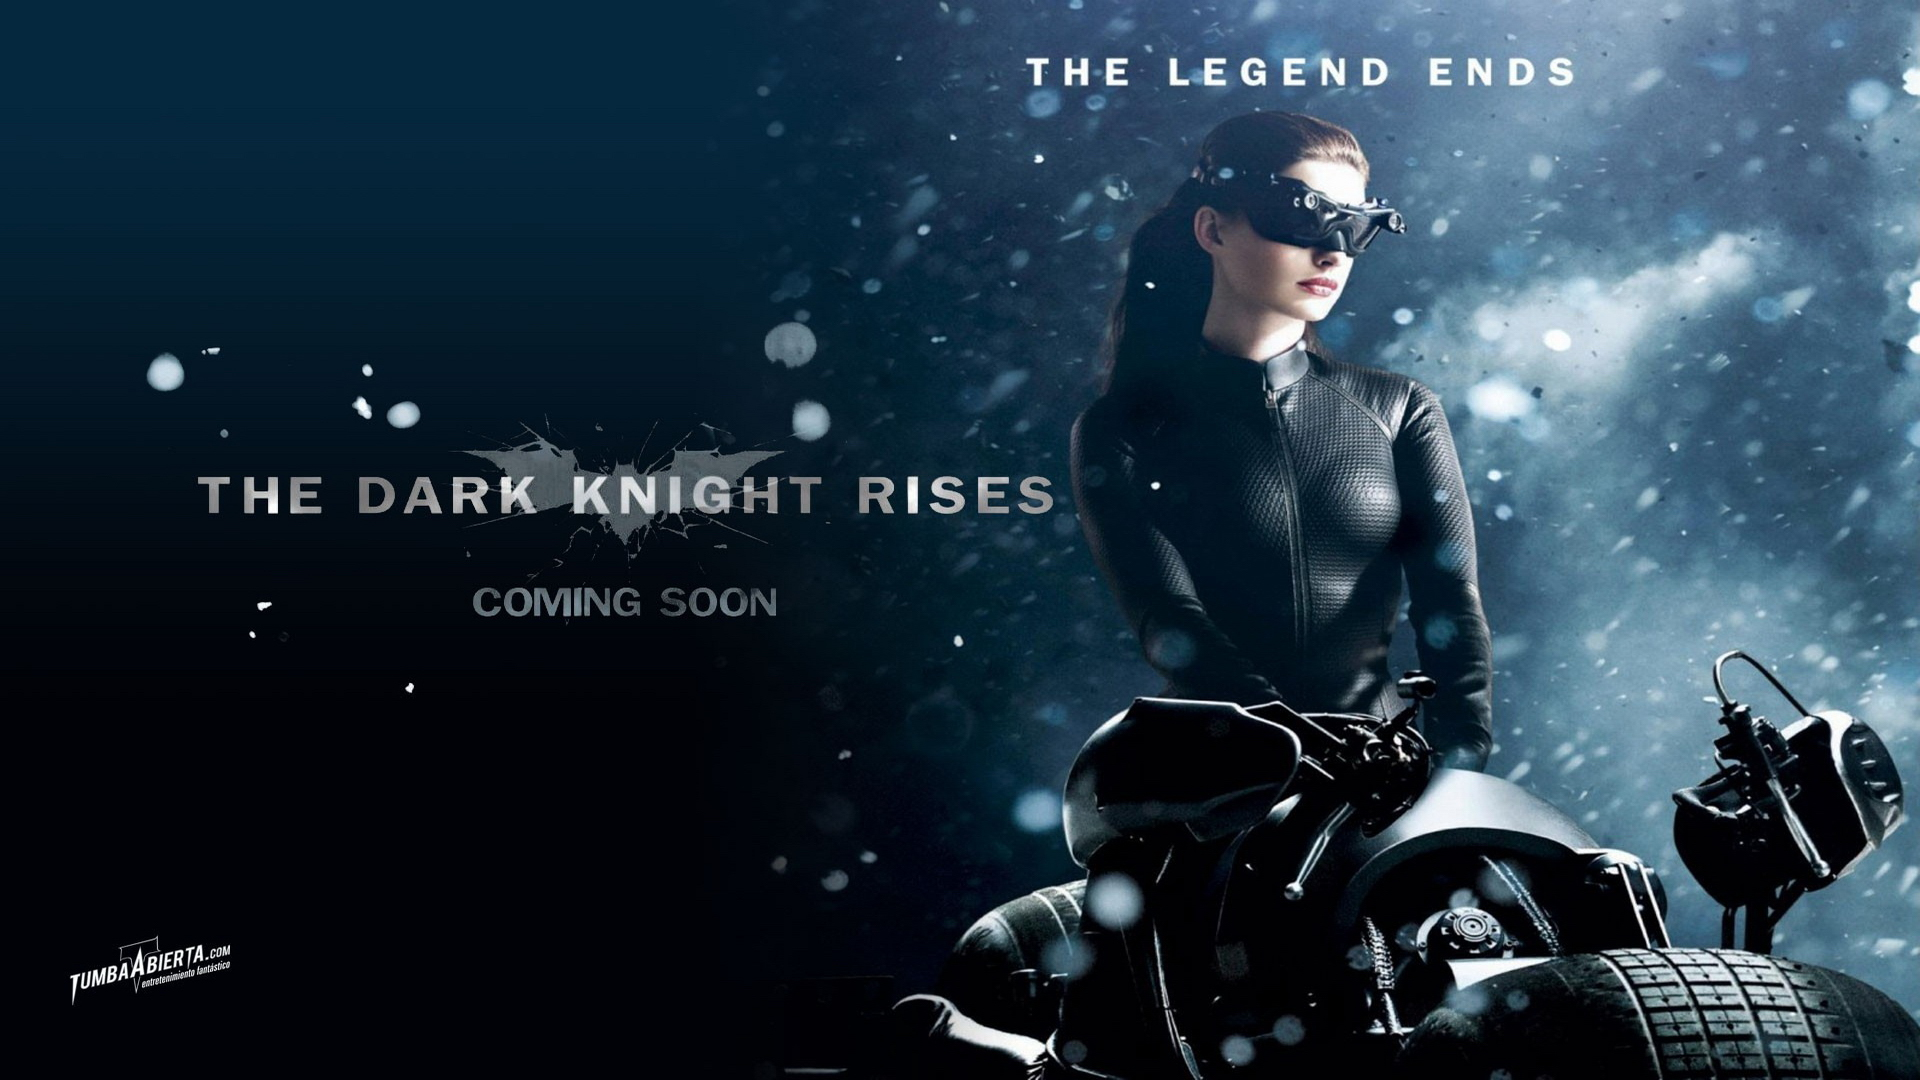 wallpapers 1920x1020 desktop backgrounds catwoman wallpapers latest 1920x1080